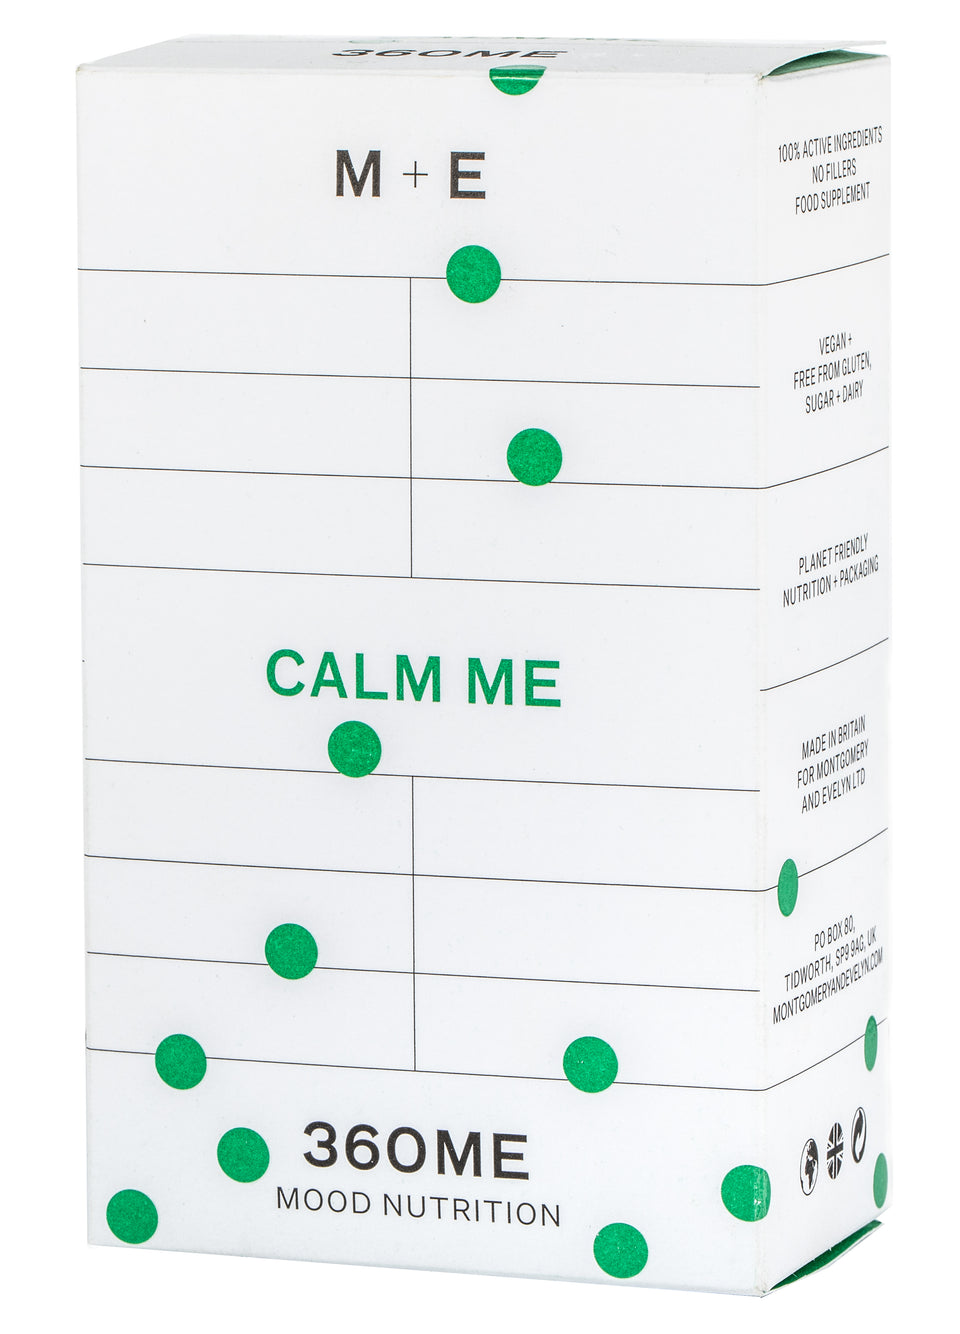 CALM ME 12 Month Subscription